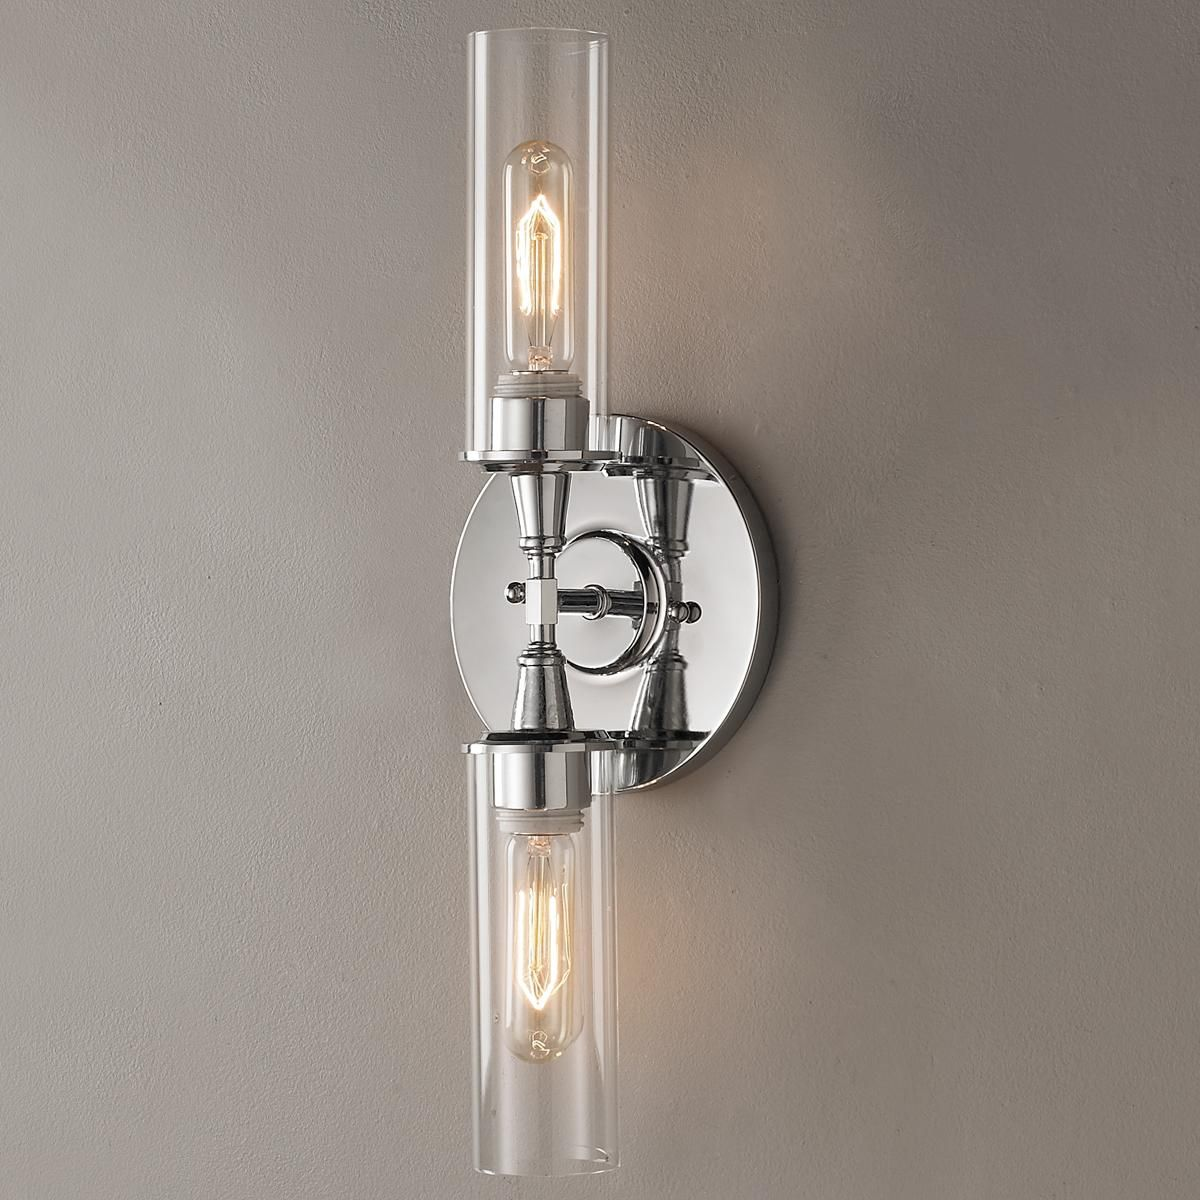 Double Bullet Glass Wall Sconce Wall Sconce Lighting